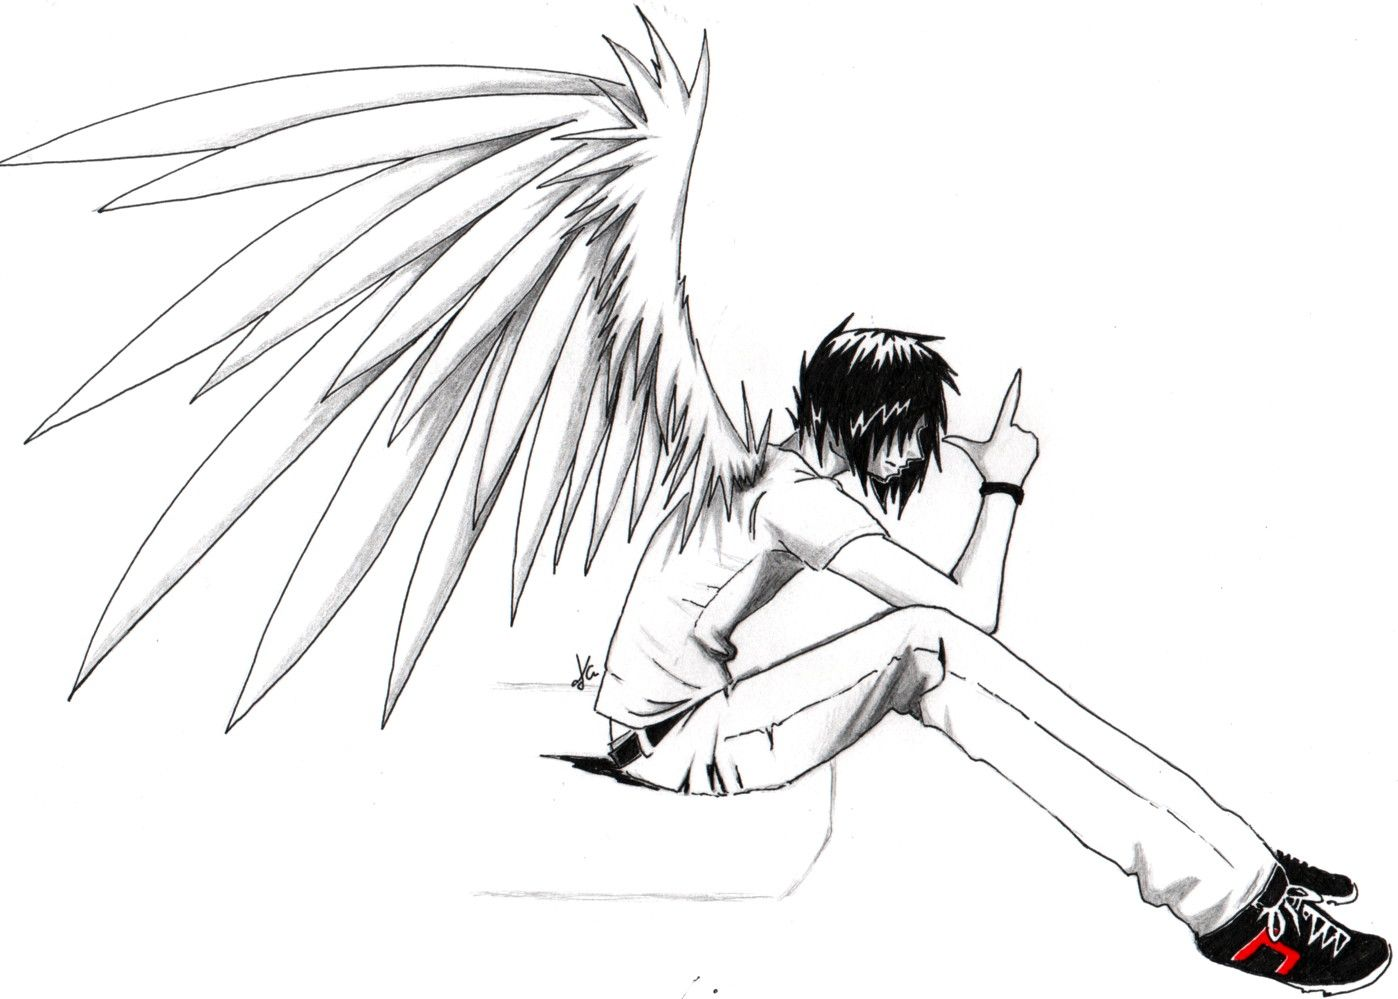 Anime drawings emo anime angel boy anime love couples anime wallpapers hd hd